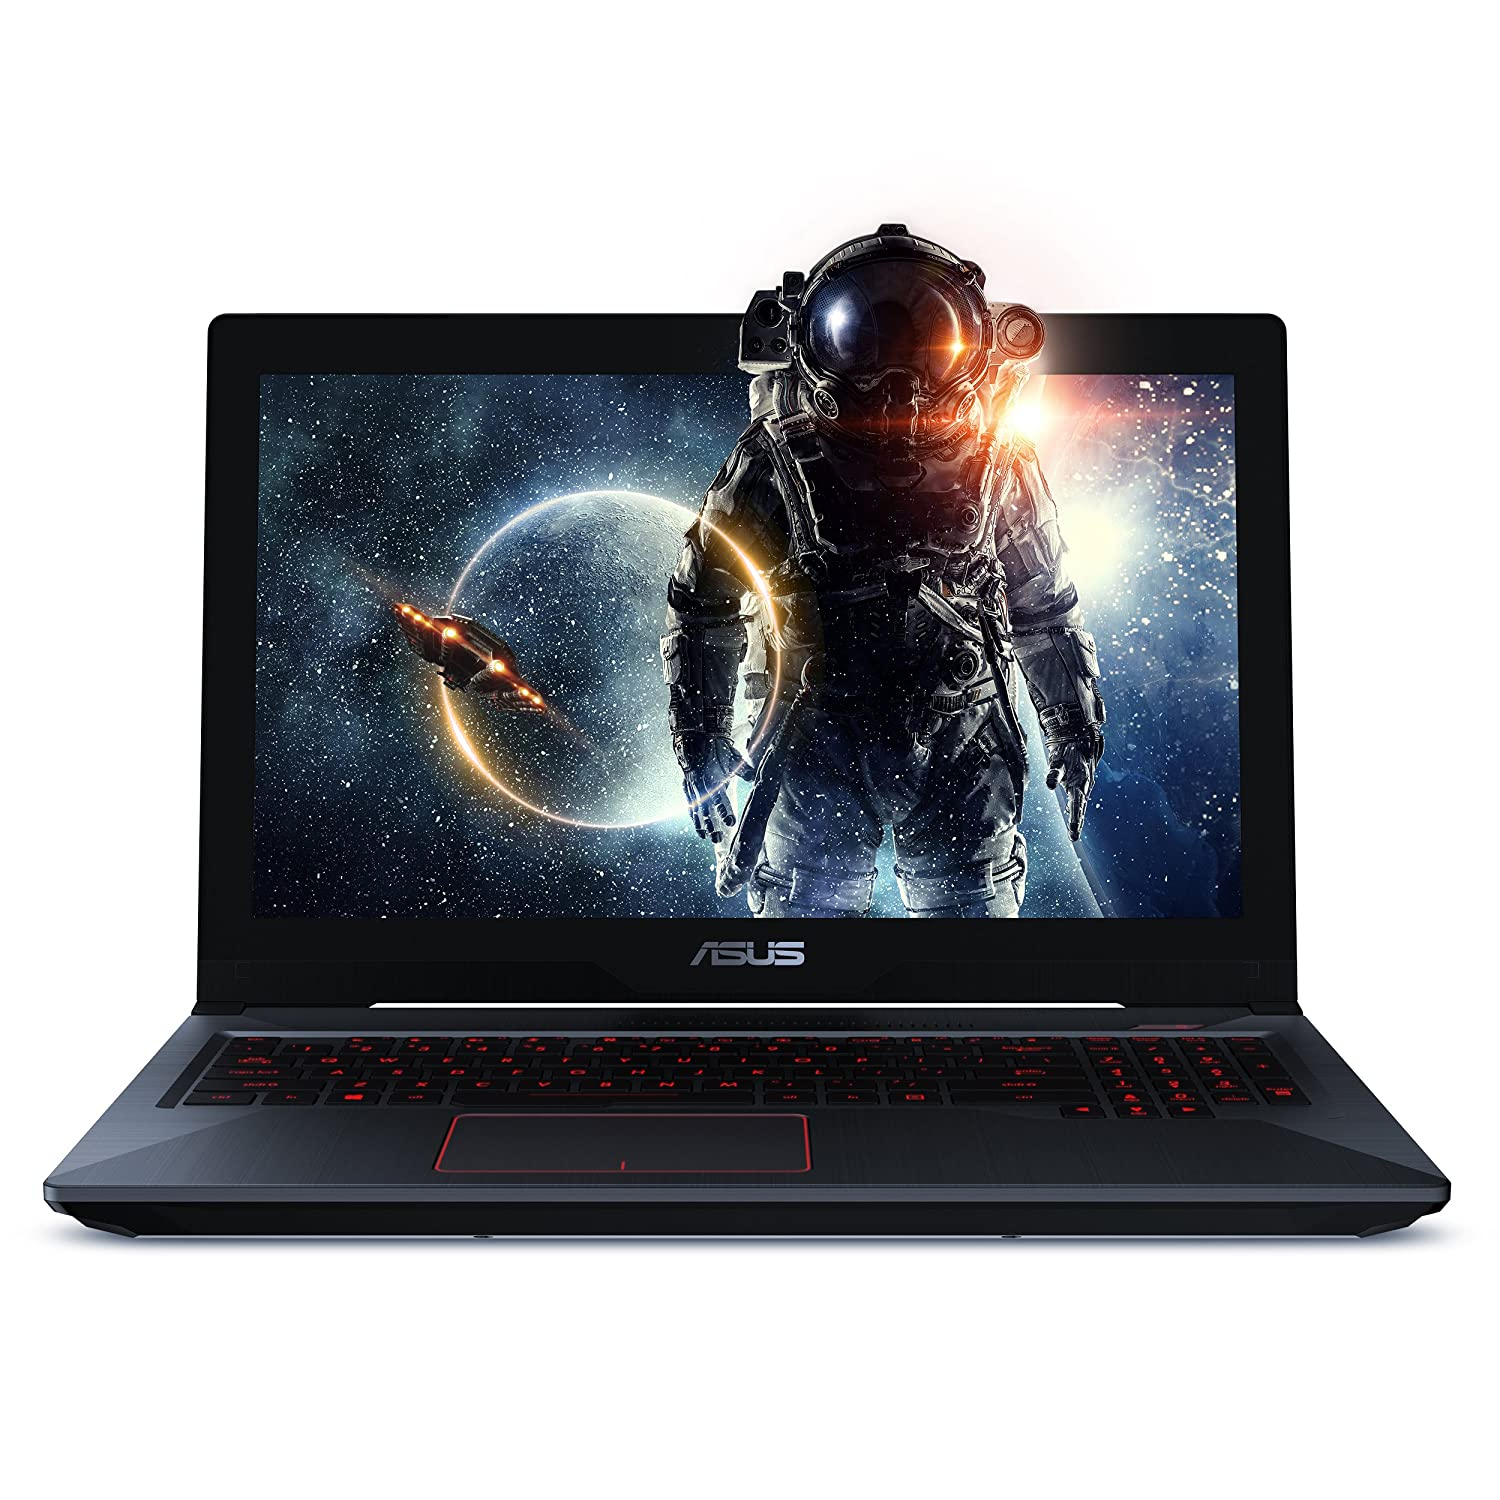 "Asus FX503VD Powerful Gaming Laptop 15.6"" Full HD, Intel Core i7-7700HQ Quad-Core Processor, GeForce GTX 1050 4GB, 8GB DDR4, 128GB SSD + 1TB HDD, Windows 10 Home – FX503VD-EH73"